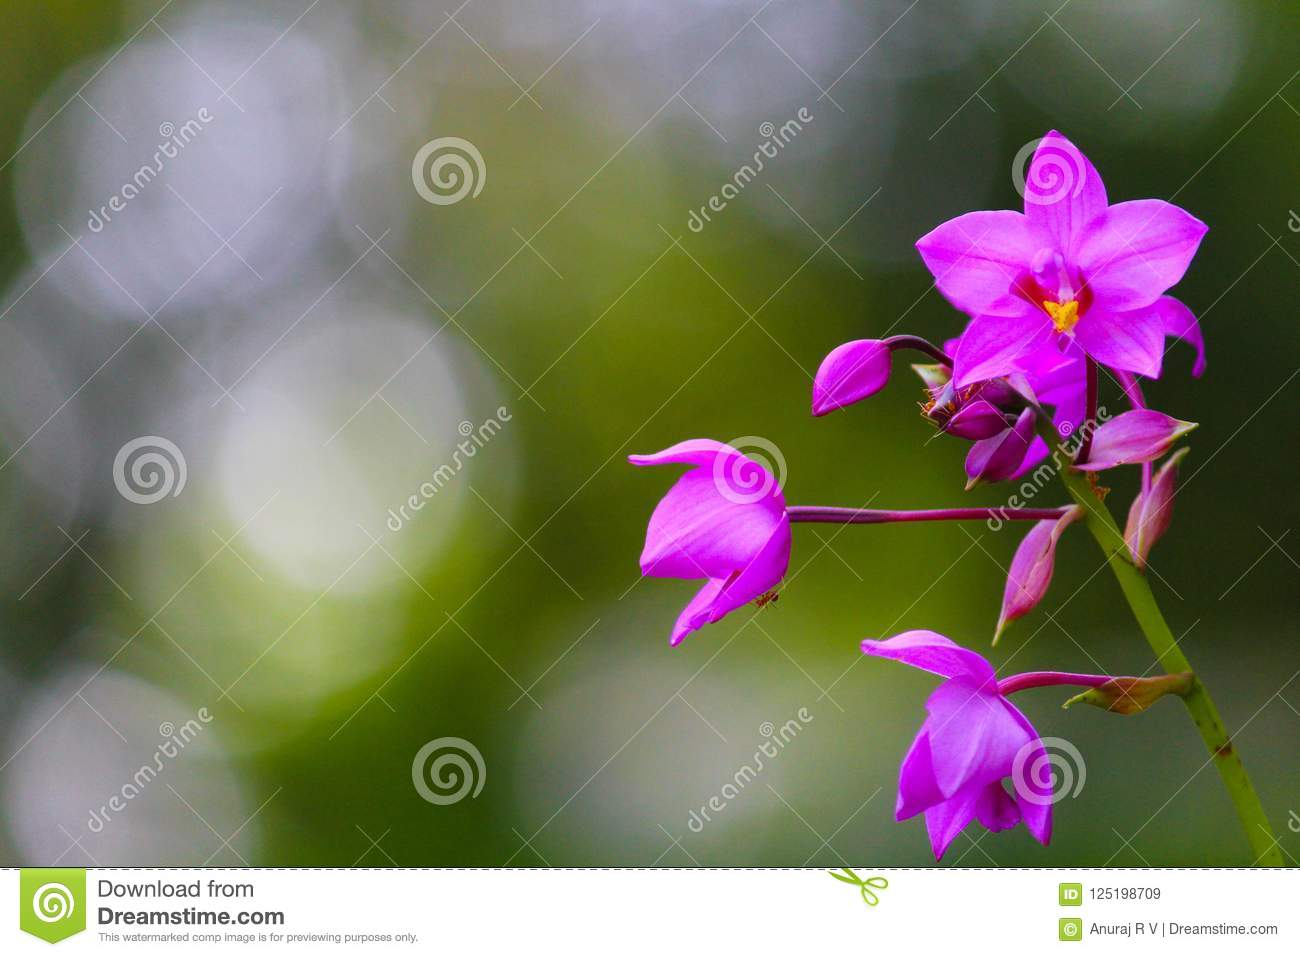 Cute Violet Orchid Flowers On Blurred Background Stock Image Image